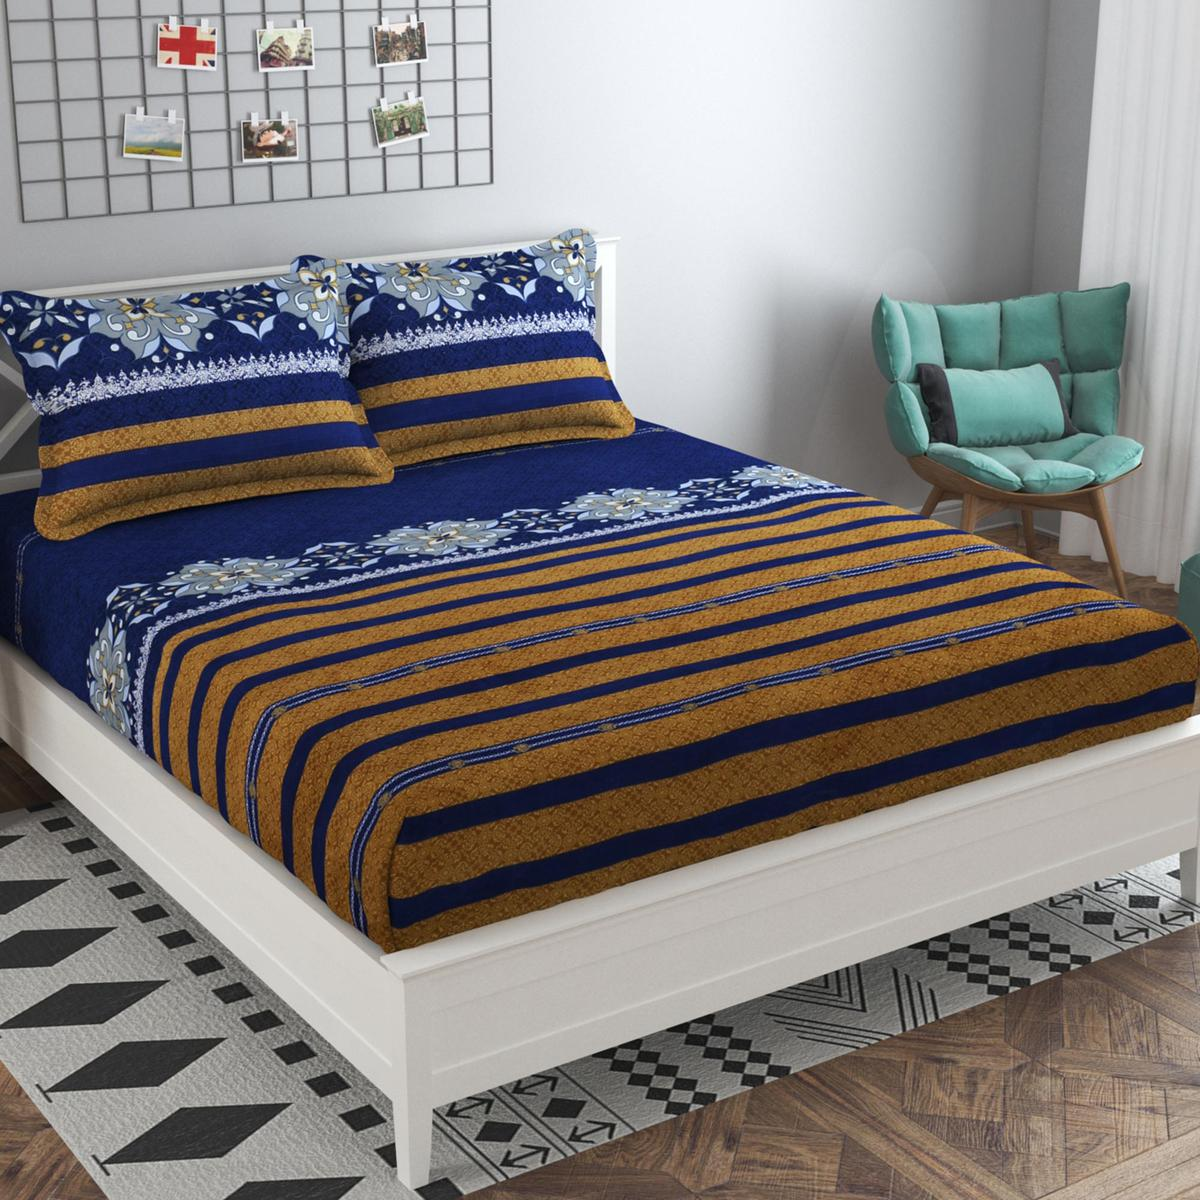 Adirav - Blue Colored Printed Cotton Double Bedsheet With 2 Pillow Cover